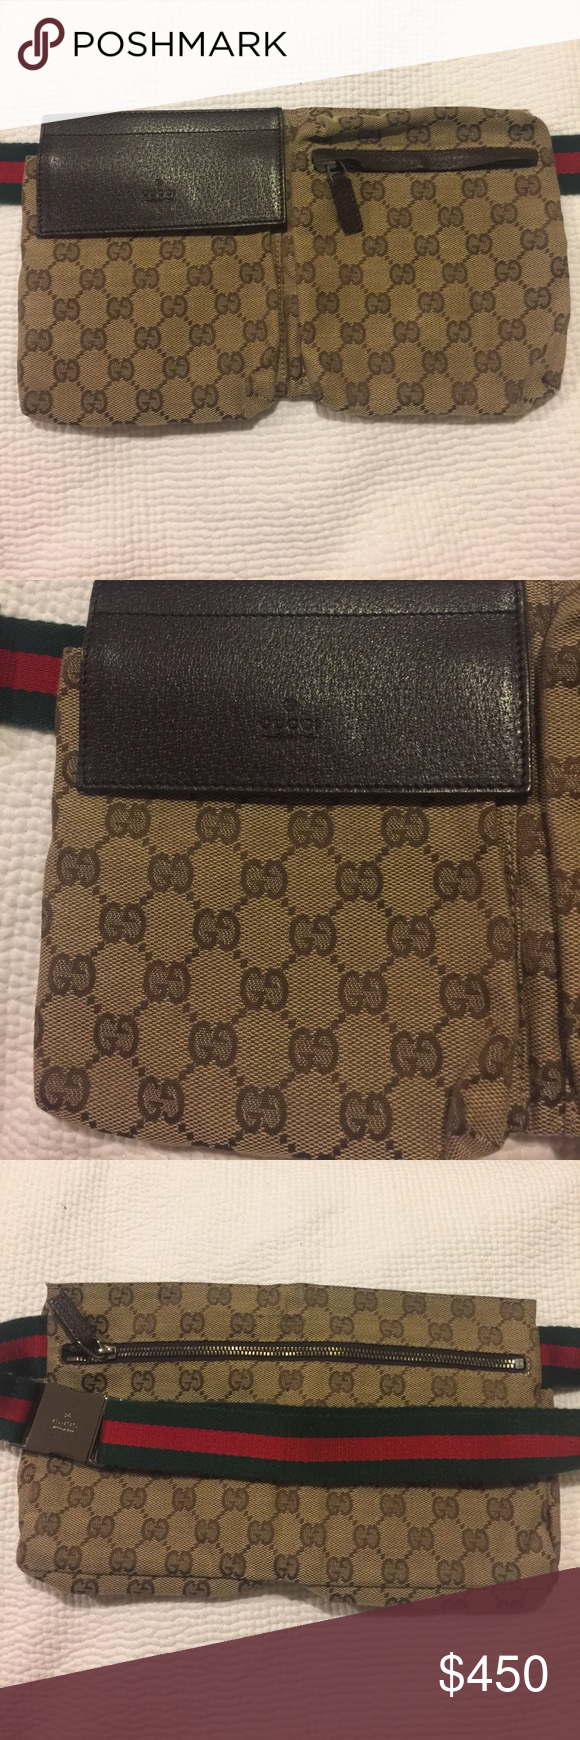 b83e8ae47511 Authentic gucci waist bag! great like new condition! gucci fanny pack with  red and green stripe. could be worn around the waist or over the shoulders.